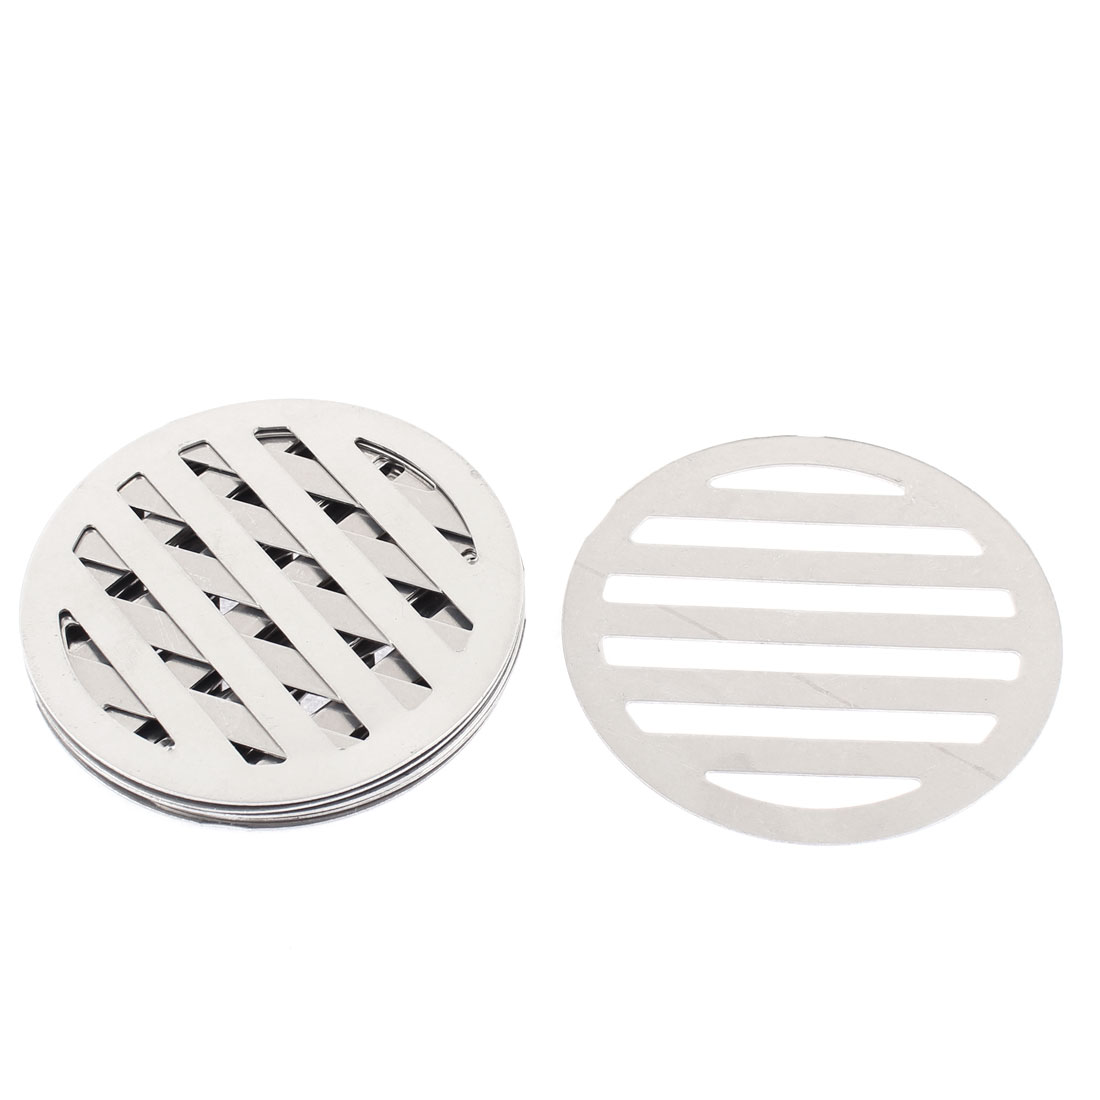 "Kitchen Bathroom Round Floor Drain Drainer Cover 3.4"" 8.6cm Dia 8Pcs"